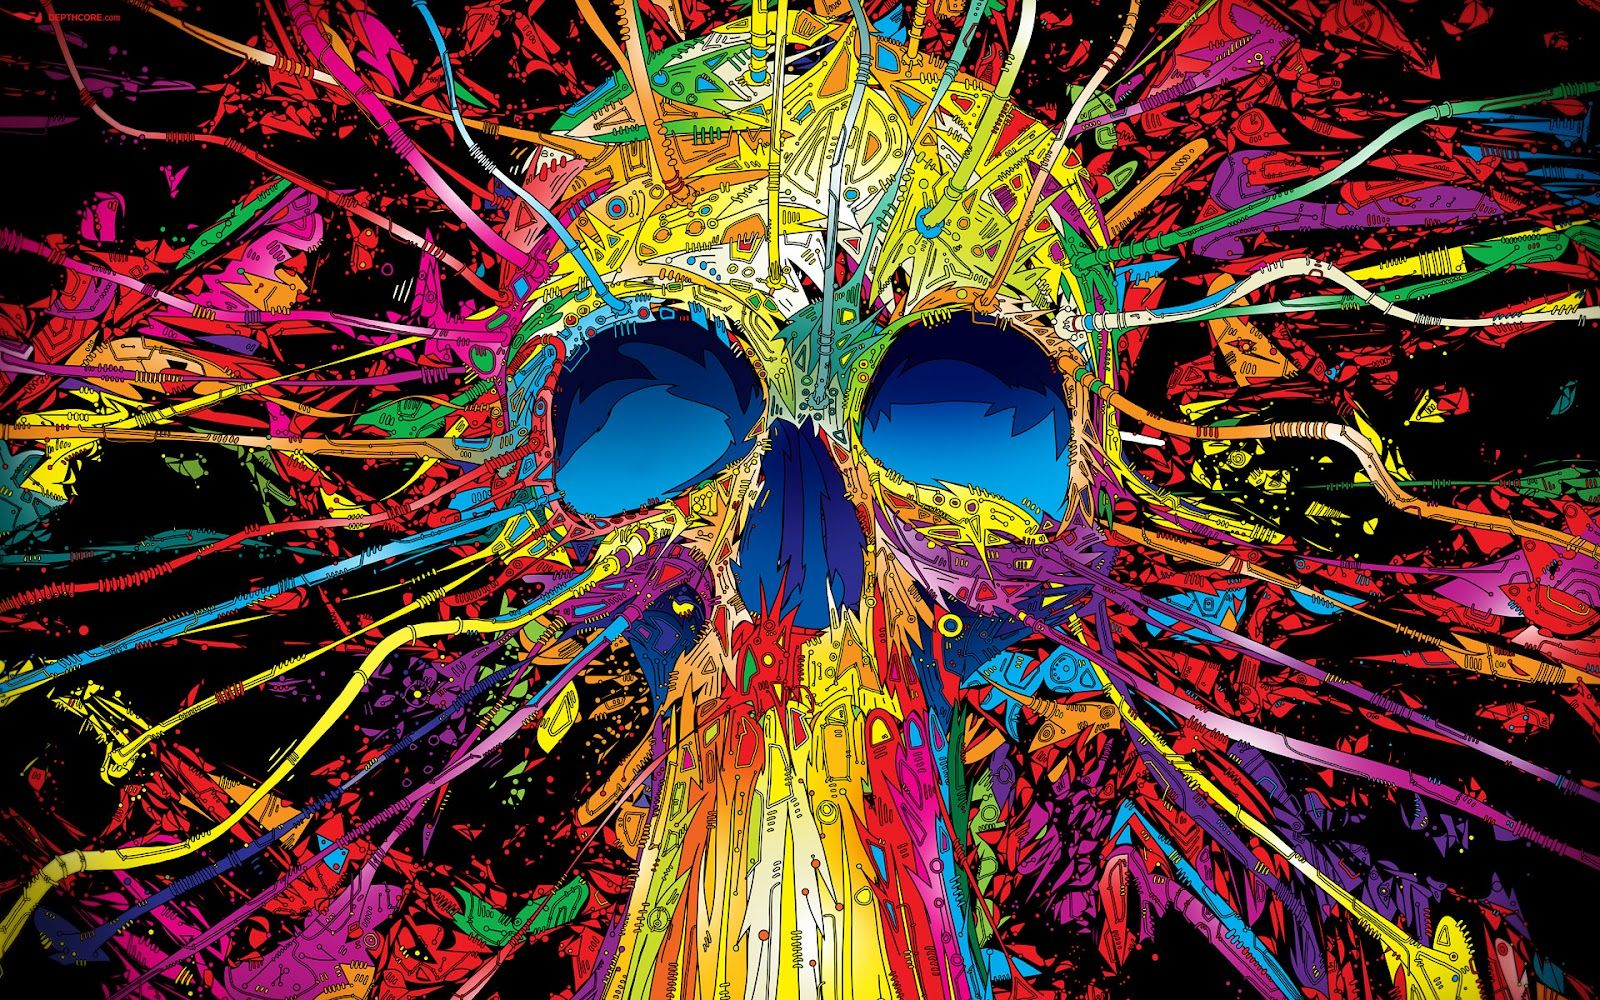 3d Abstract Desktop Wallpaper 3d And Abstract Desktop Wallpapers Hd Backgrounds Skull Wallpaper Skull Art Psychedelic Art